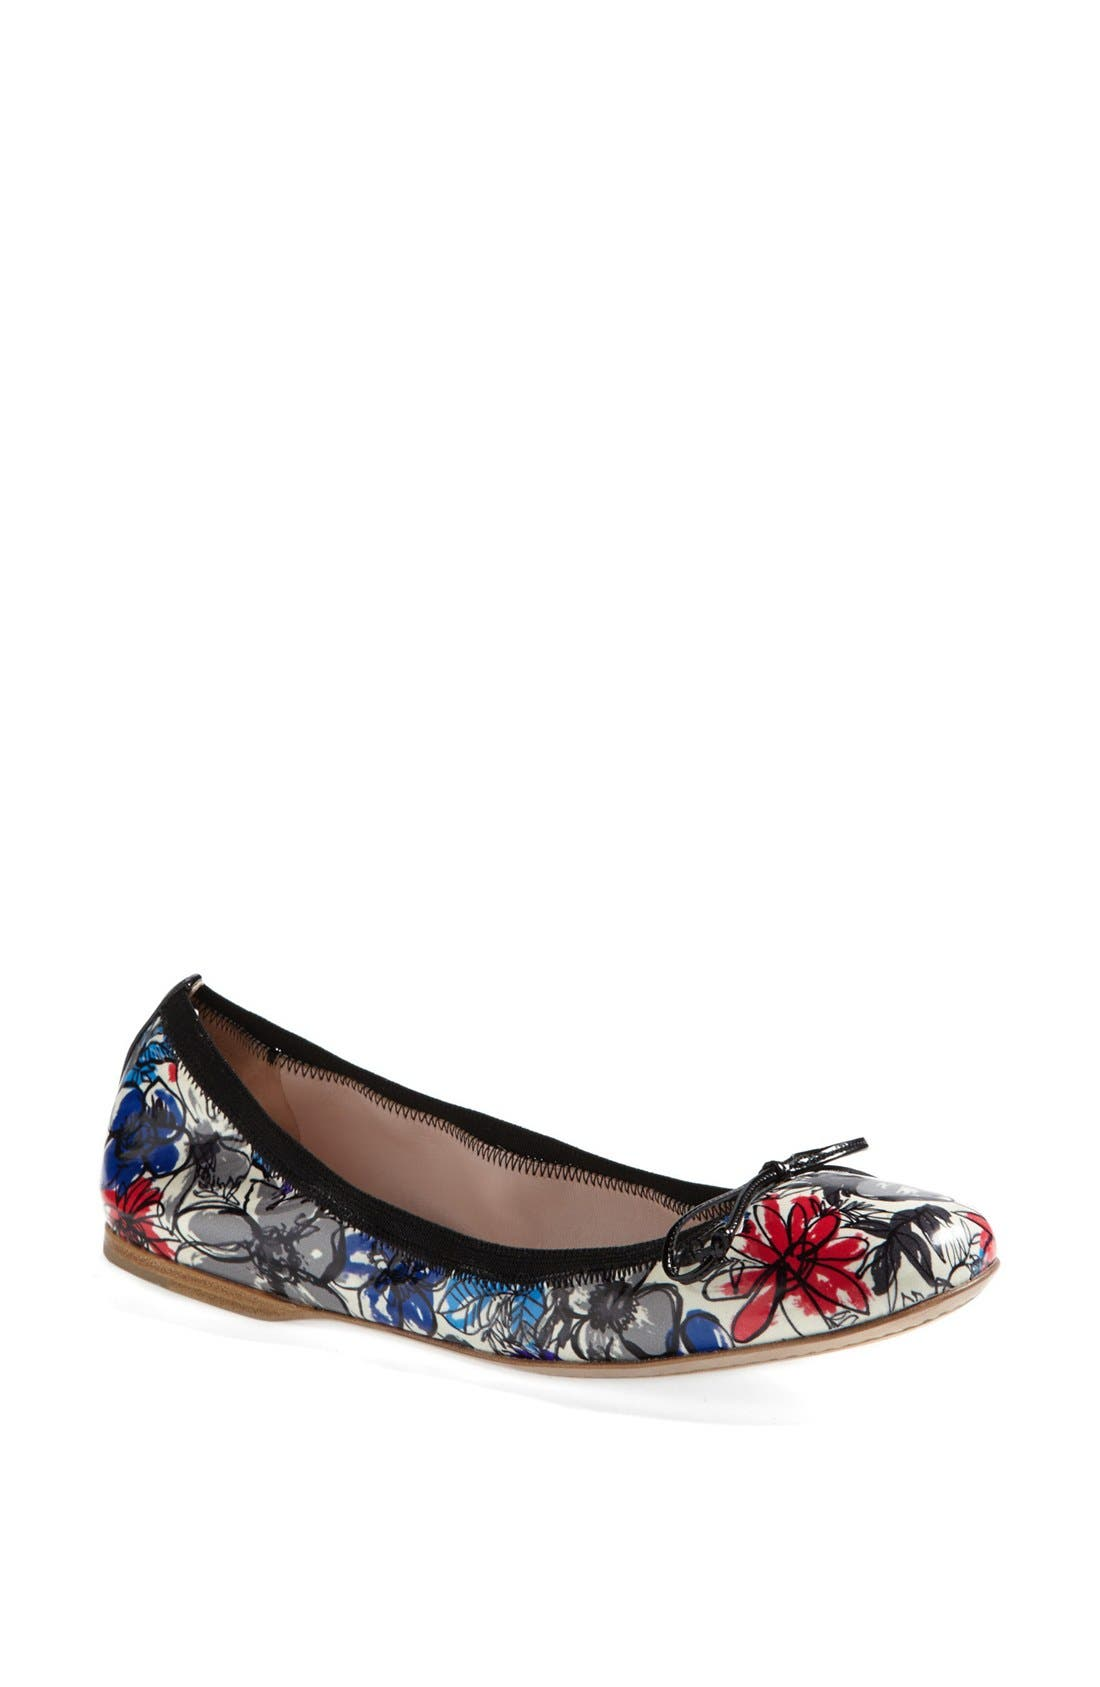 Alternate Image 1 Selected - Miu Miu Floral Ballet Flat